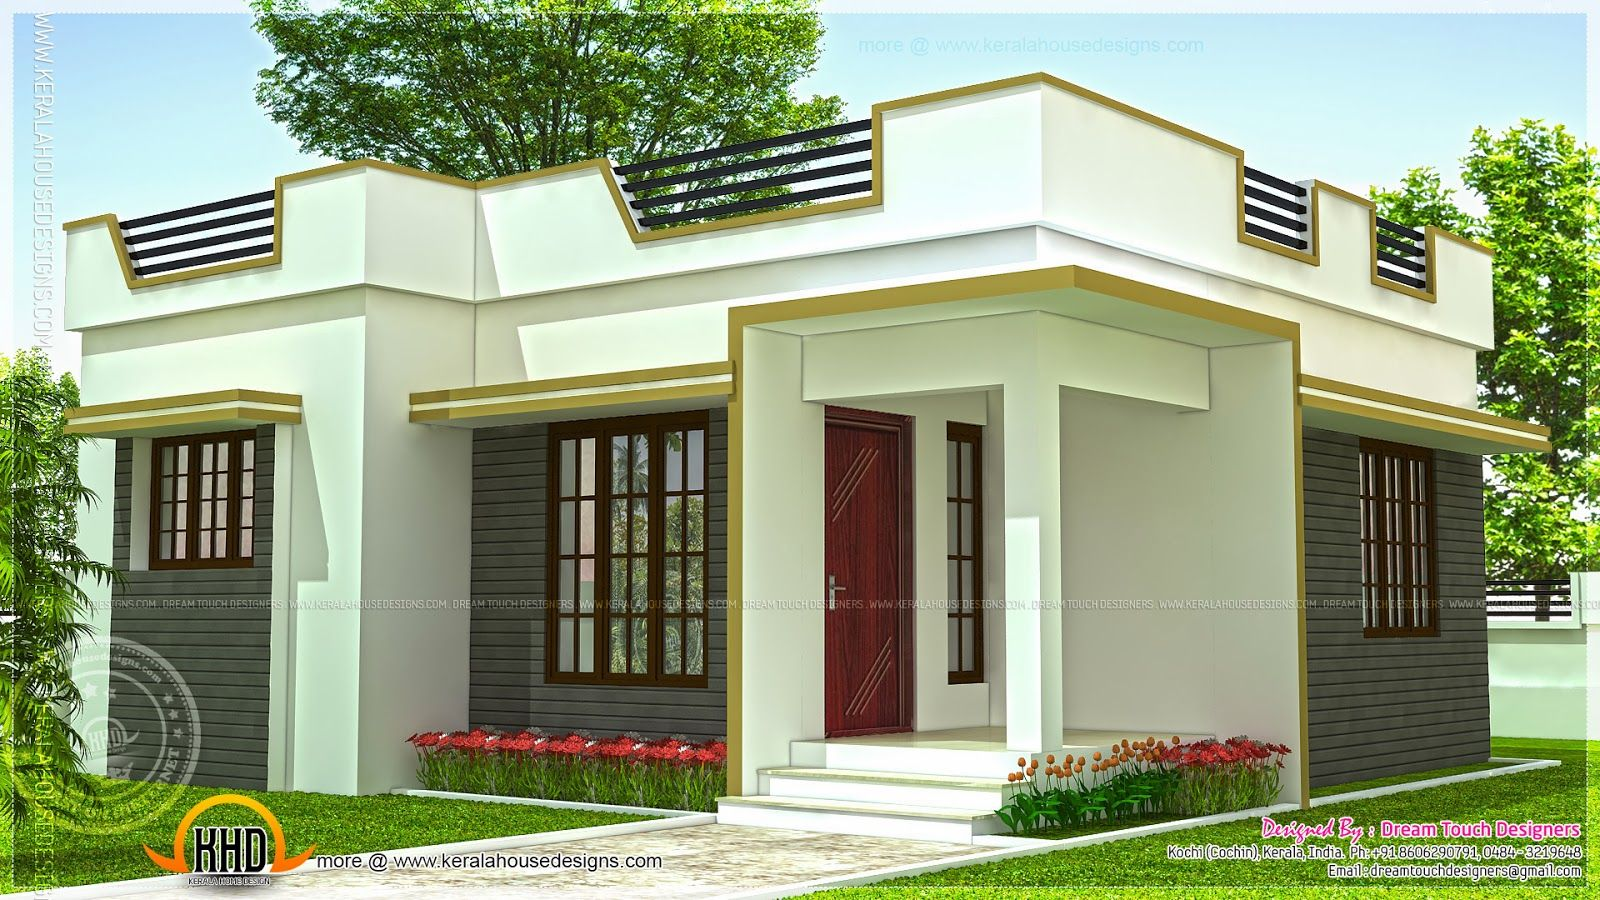 Home Designs Kerala Plans | Kerala Small House Low Budget Plan Modern Plans Blog Modern House